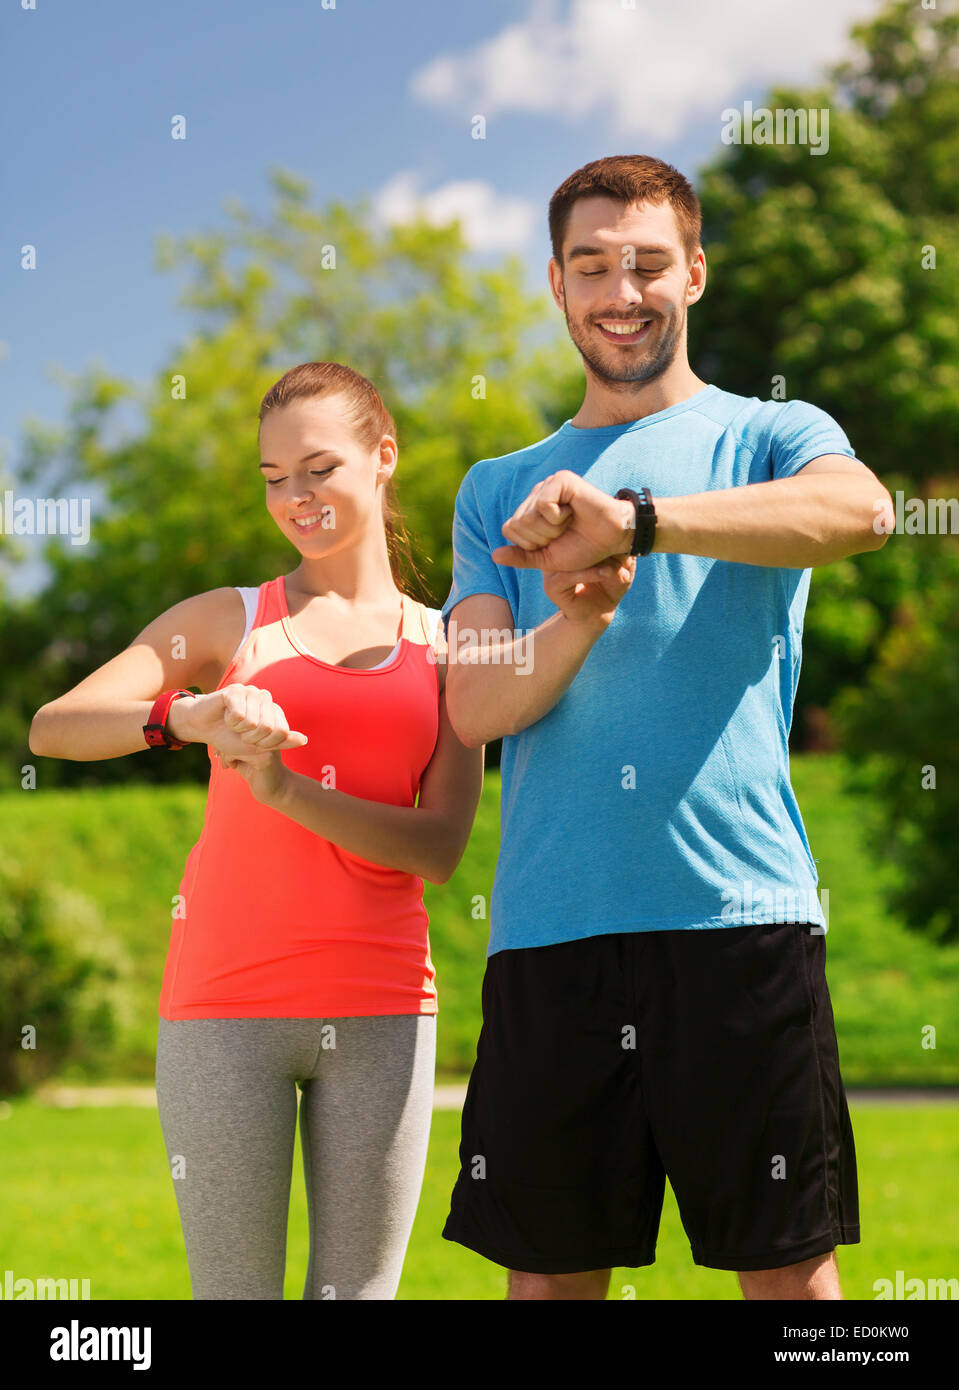 smiling people with heart rate watches outdoors - Stock Image